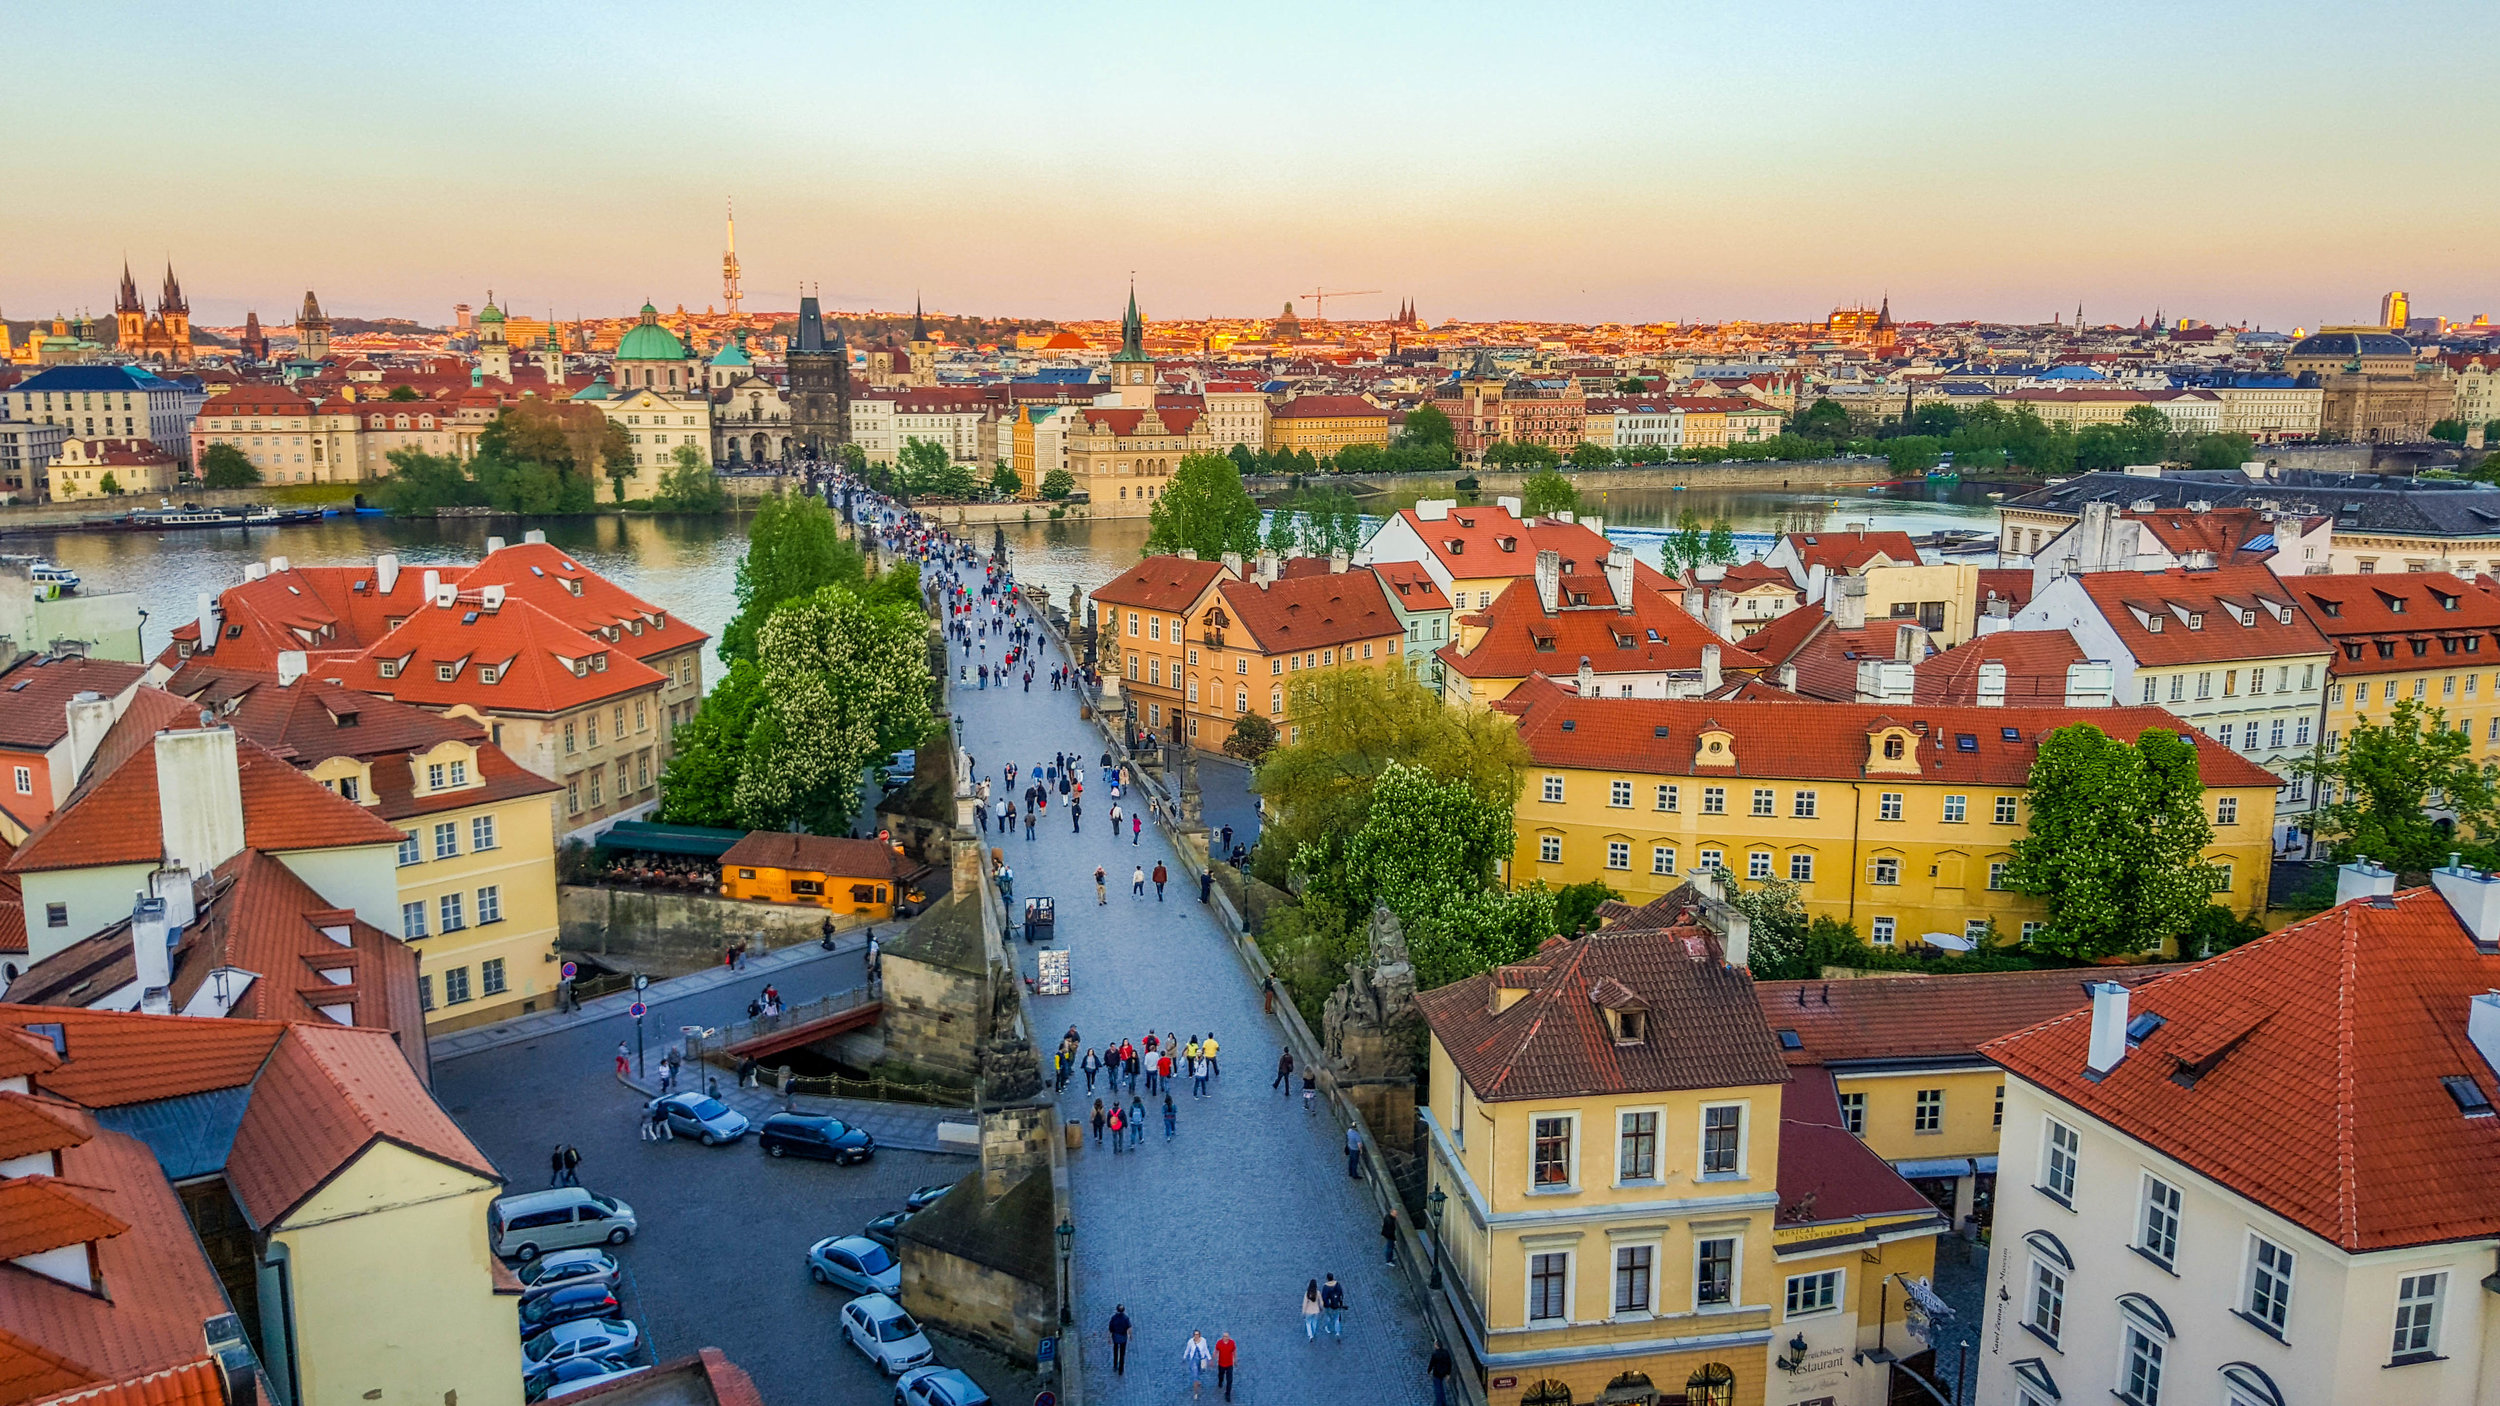 View of Charles Bridge from the Lesser Town Bridge Tower at dusk.